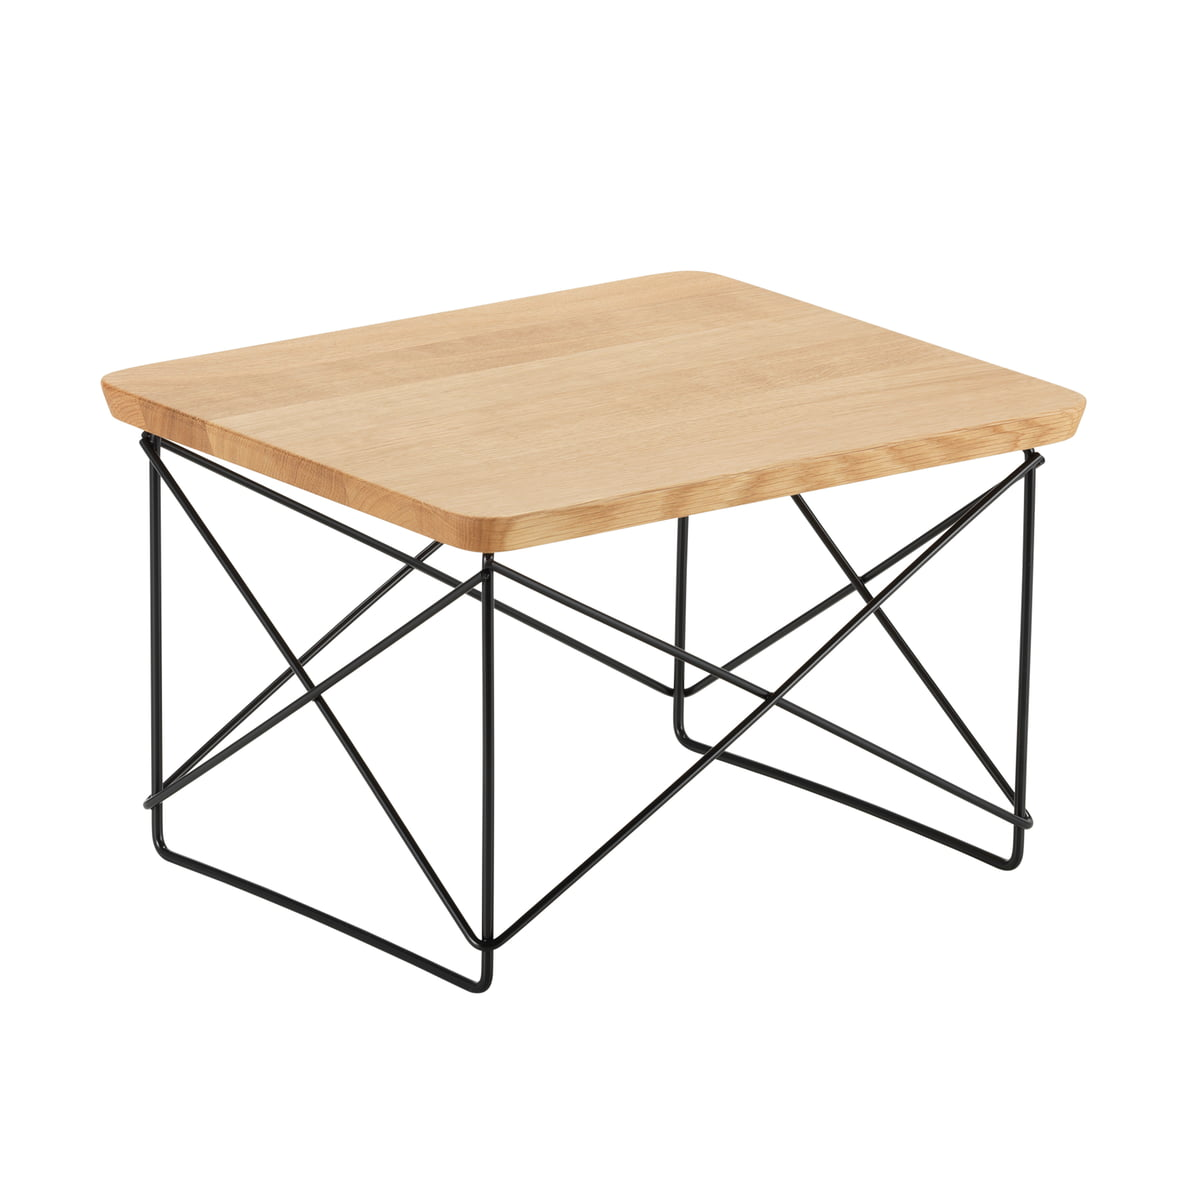 Vitra - Table Eames Occasional LTR chêne / basic dark